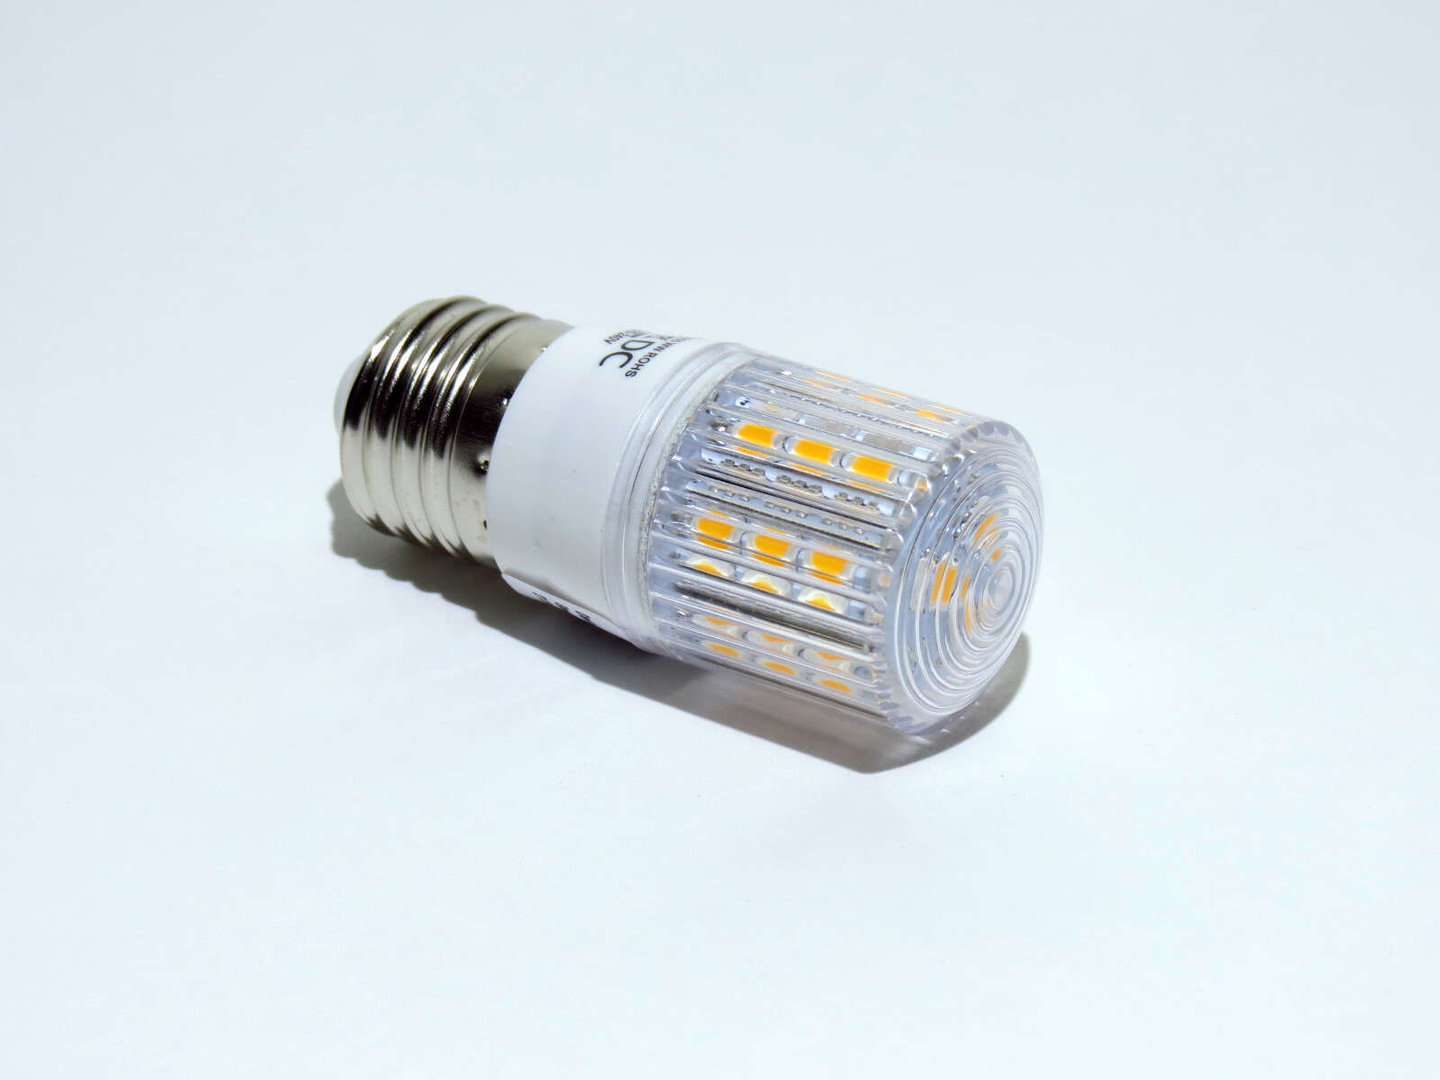 E27 24 LED SMD 230V warmweiß